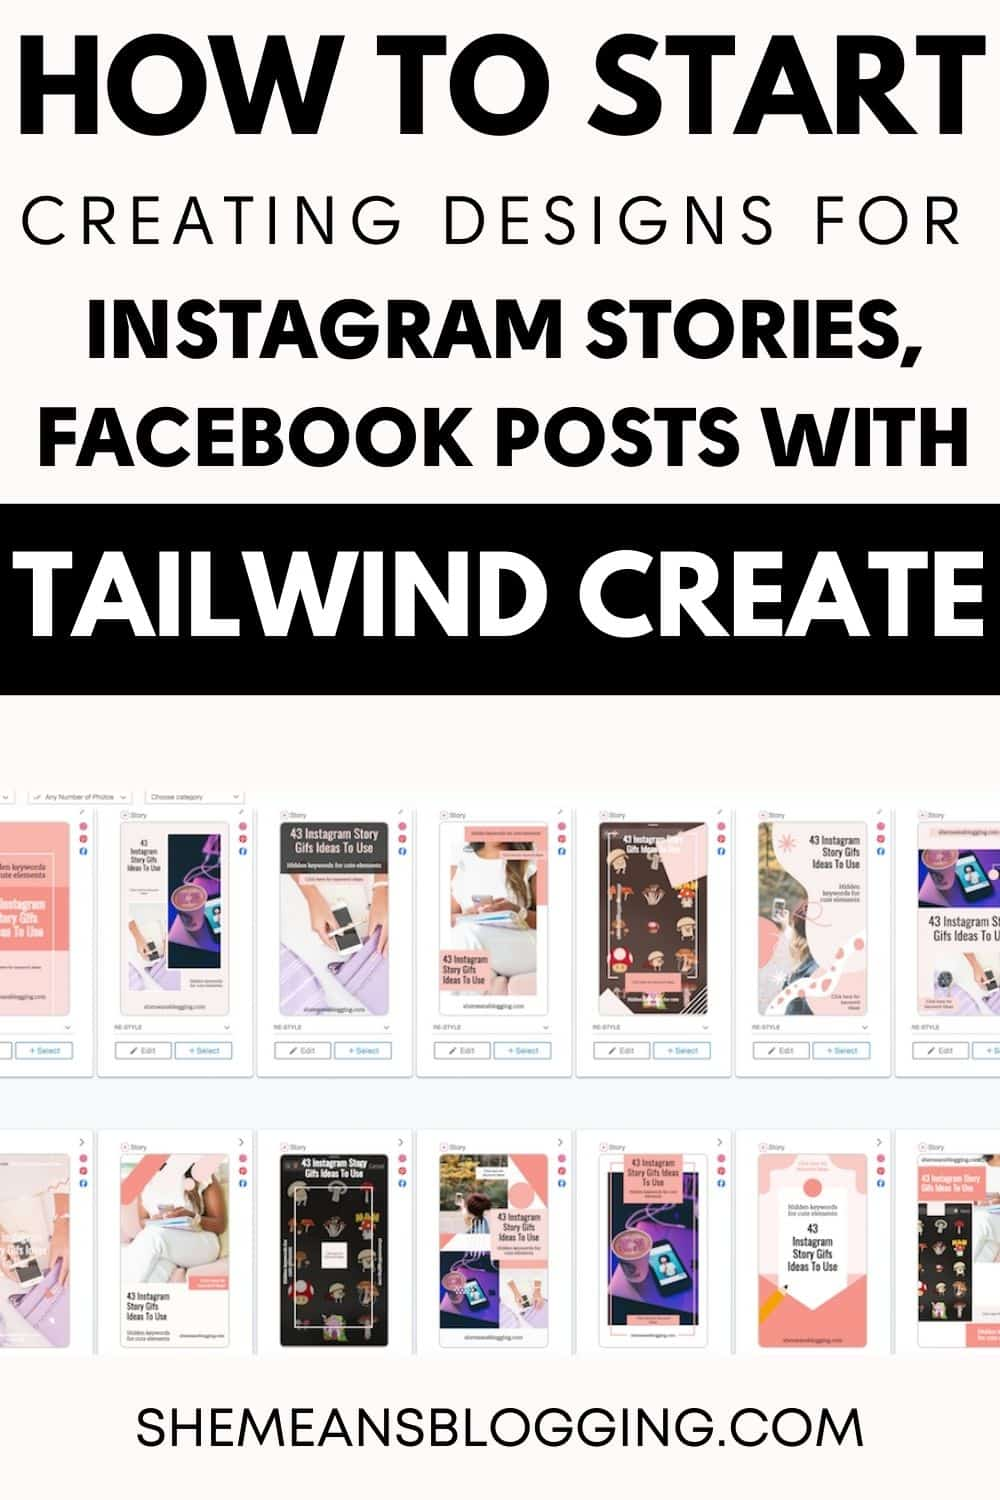 Tailwind Create Review : How to start using tailwind create for designing graphics for Instagram posts, Facebook posts, Instagram stories and Pinterest pins! Click to follow this fast image designing tool for hundreds of designs in seconds. Social media content creation and scheduling tool.